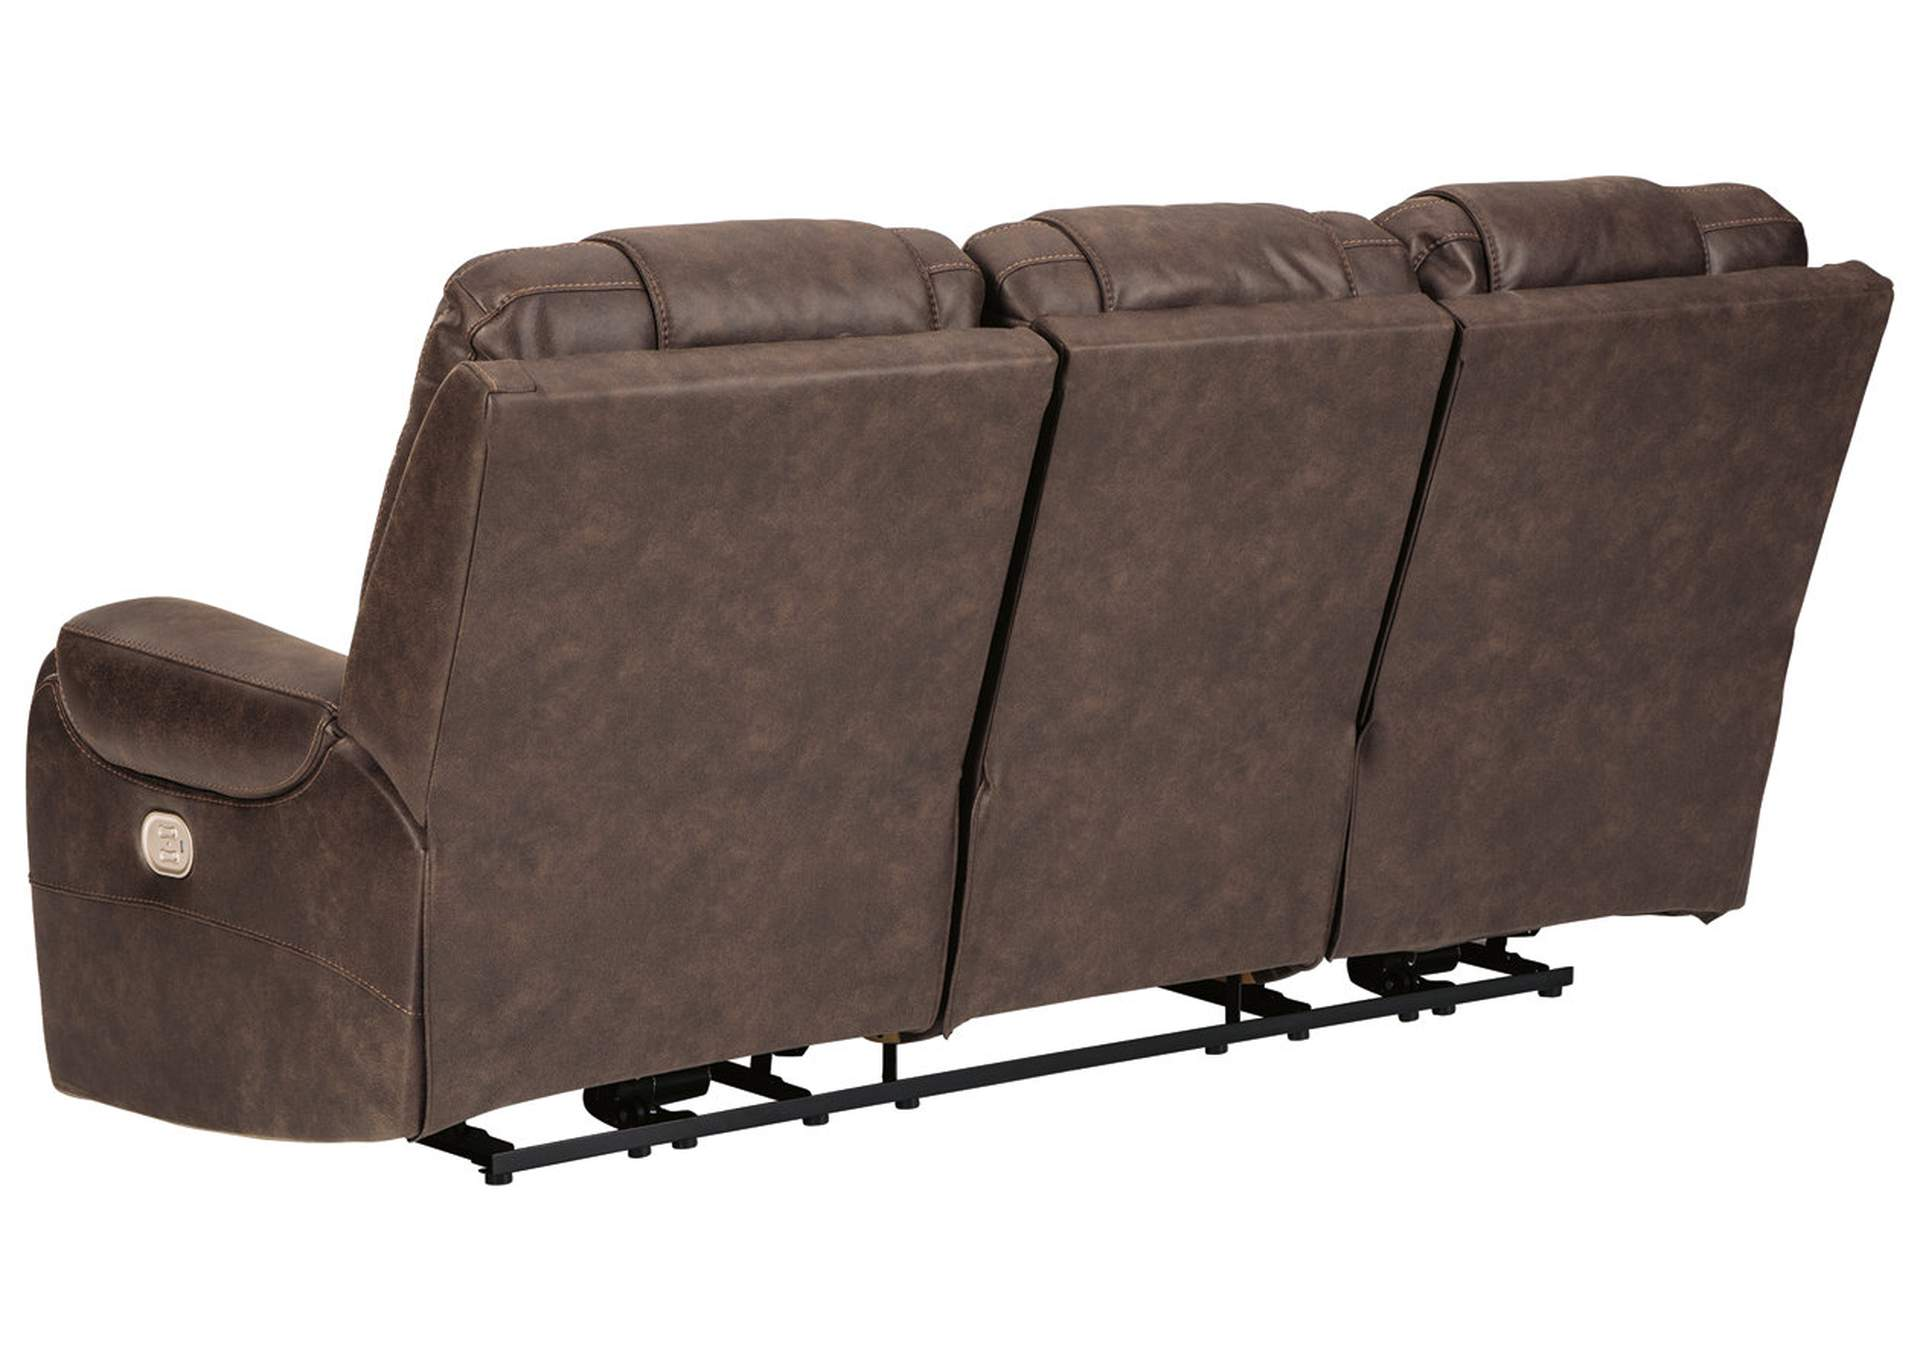 Yacolt Power Reclining Sofa,Signature Design By Ashley